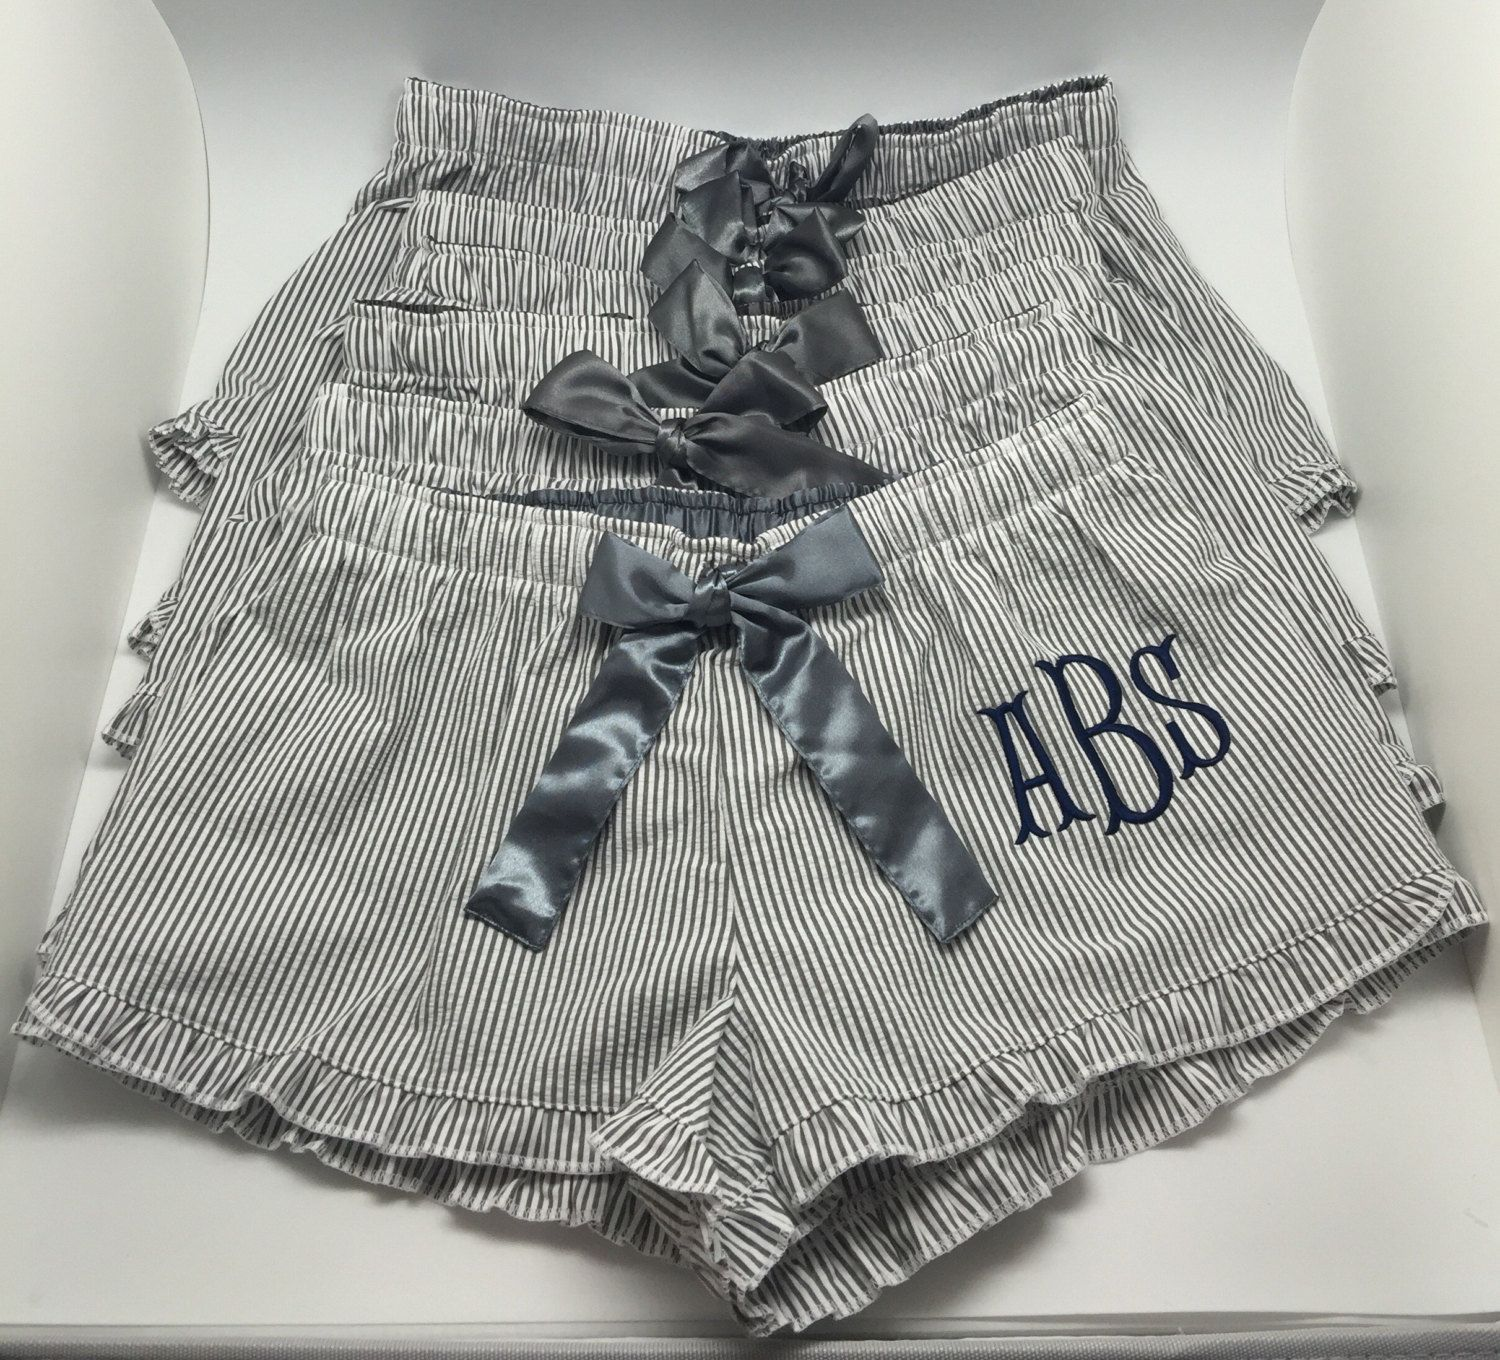 47a6984fc0 Lounge in style with our delicious monogram pajama shorts! Perfect gift for  your bridal party.   SEND A CONVO FOR A DIFFERENT NUMBER THAN 8!    IN A  RUSH